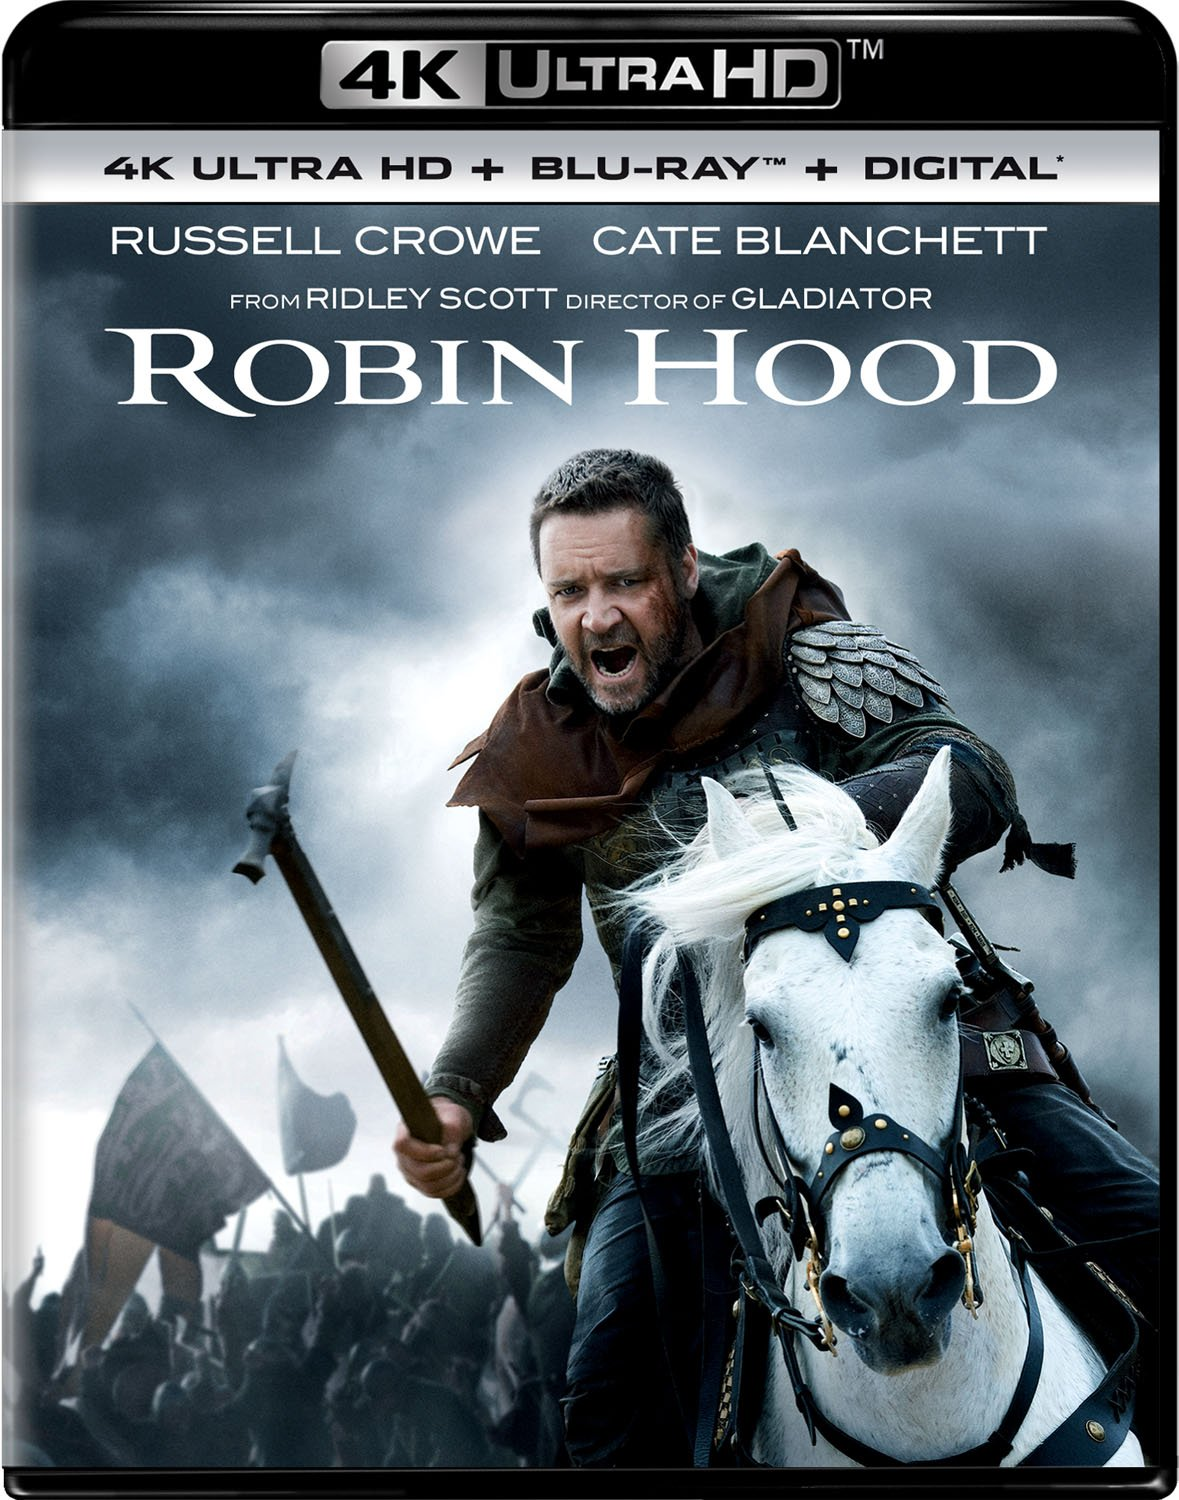 4K Blu-ray : Robin Hood (With Blu-ray, 4K Mastering, Director's Cut / Edition, Digital Copy, 2 Pack)